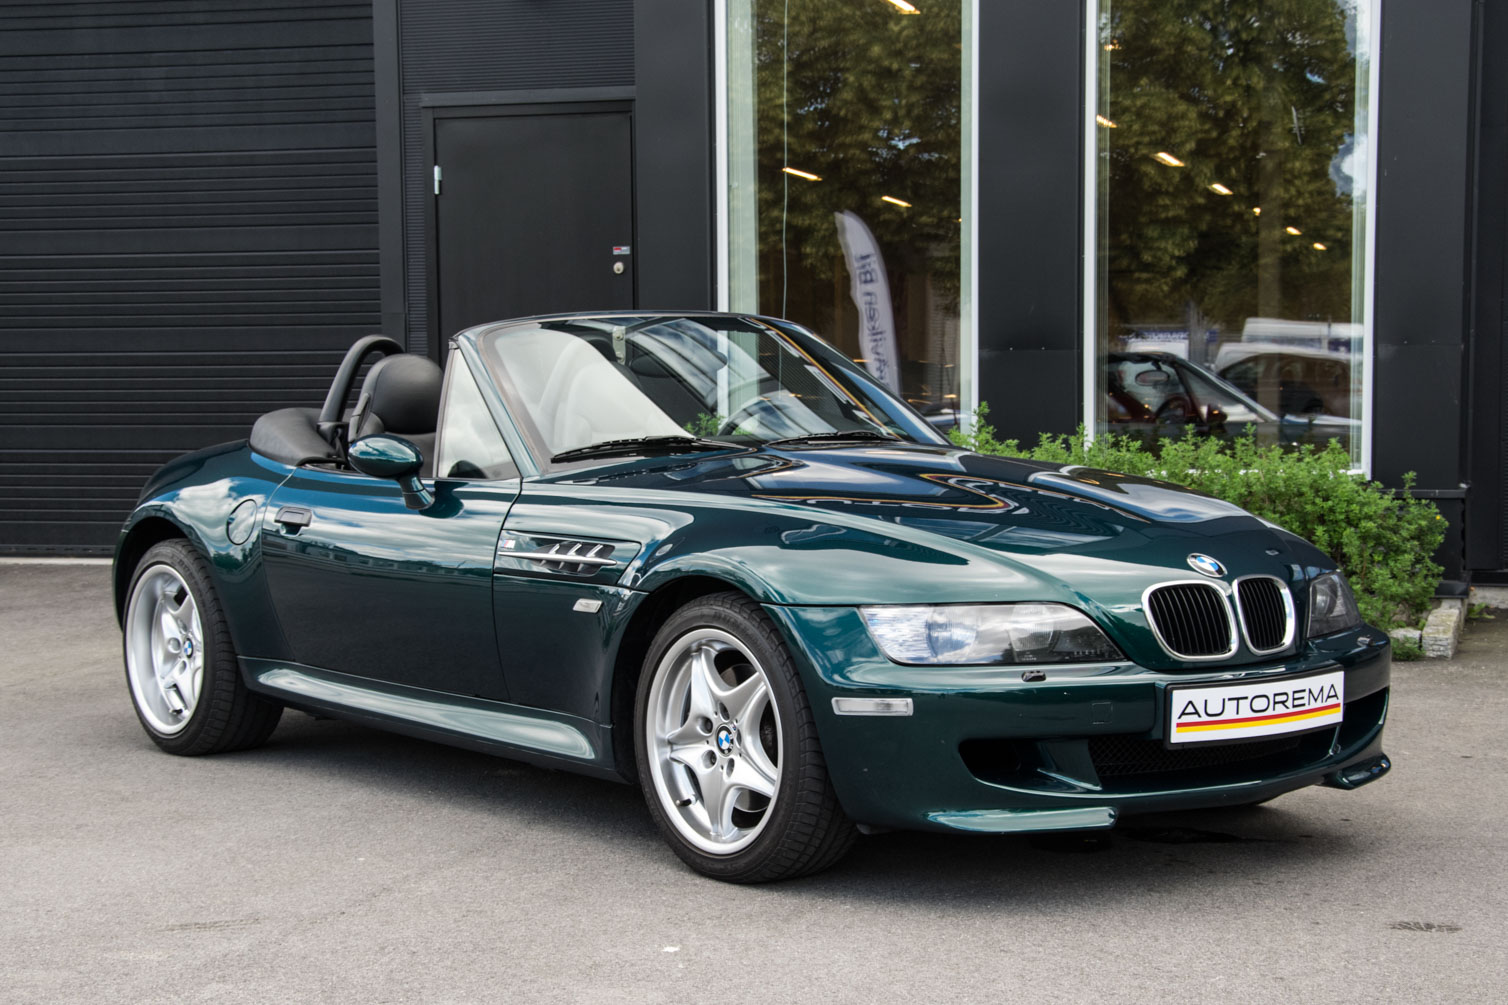 bmw z3 m roadster 1999 autorema. Black Bedroom Furniture Sets. Home Design Ideas